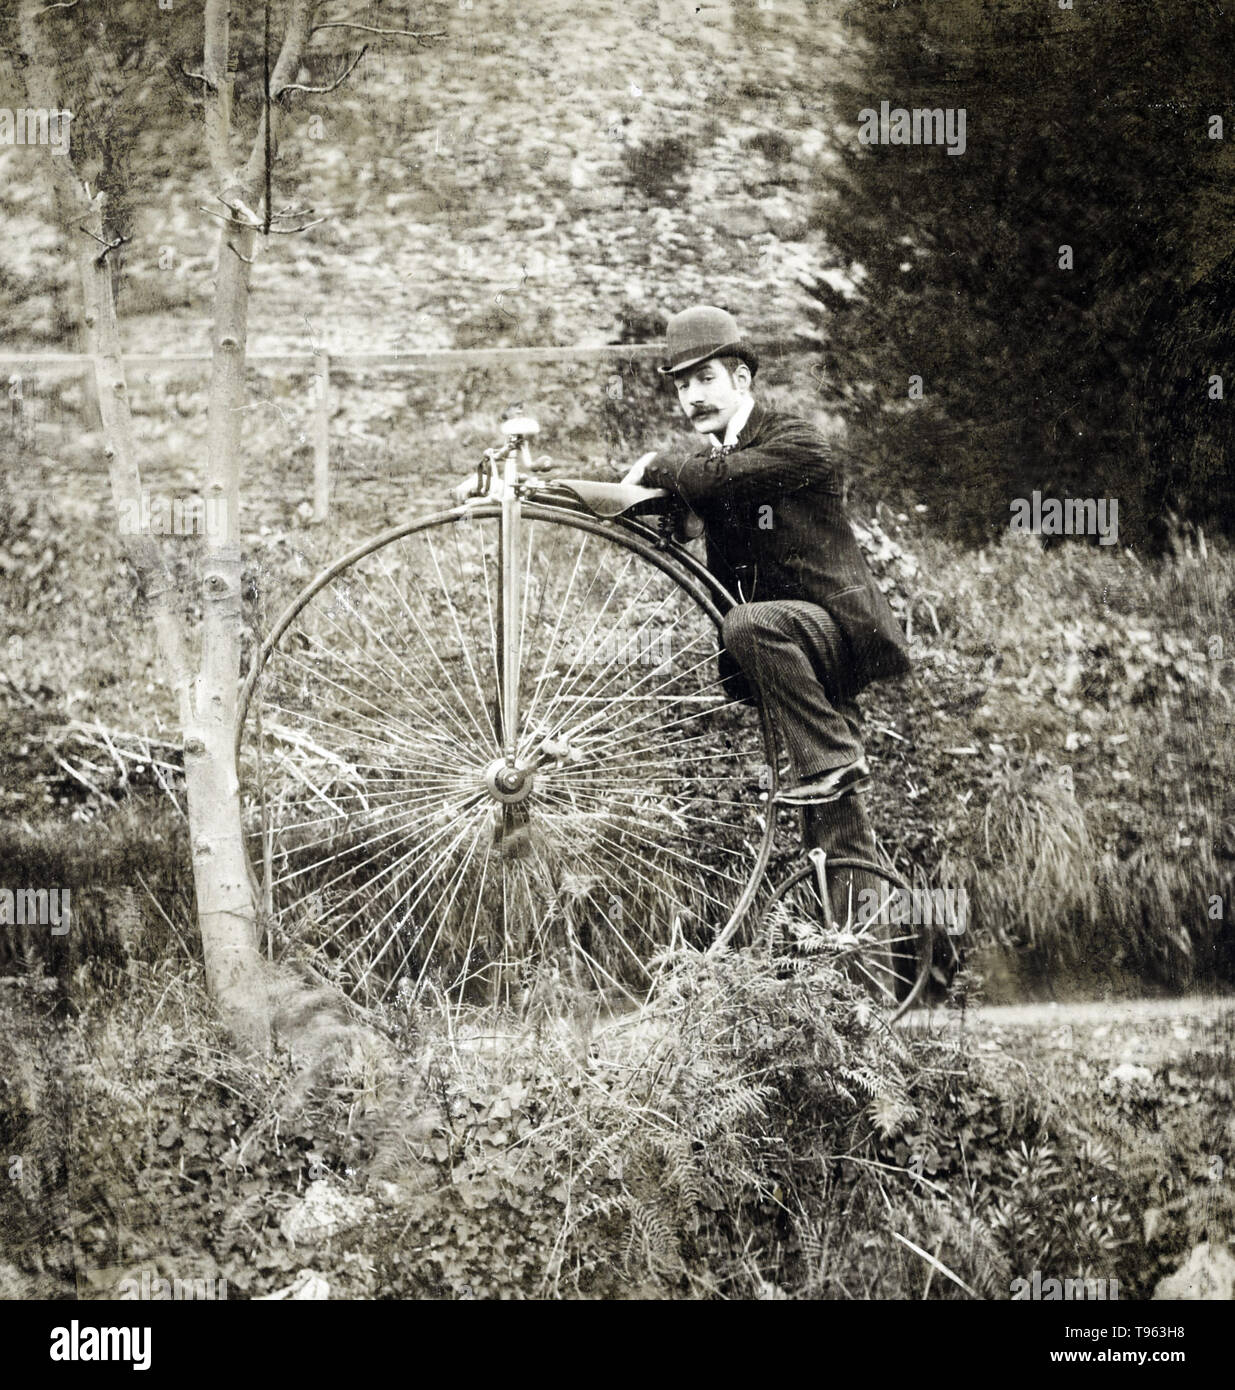 An antique bicycle; American; about 1891. The penny-farthing, also known as a high wheel, high wheeler and ordinary, is a type of bicycle with a large front wheel and a much smaller rear wheel. It was popular after the 'boneshaker' until the development of the safety bicycle in the 1880s. It was the first machine to be called a 'bicycle.' - Stock Image